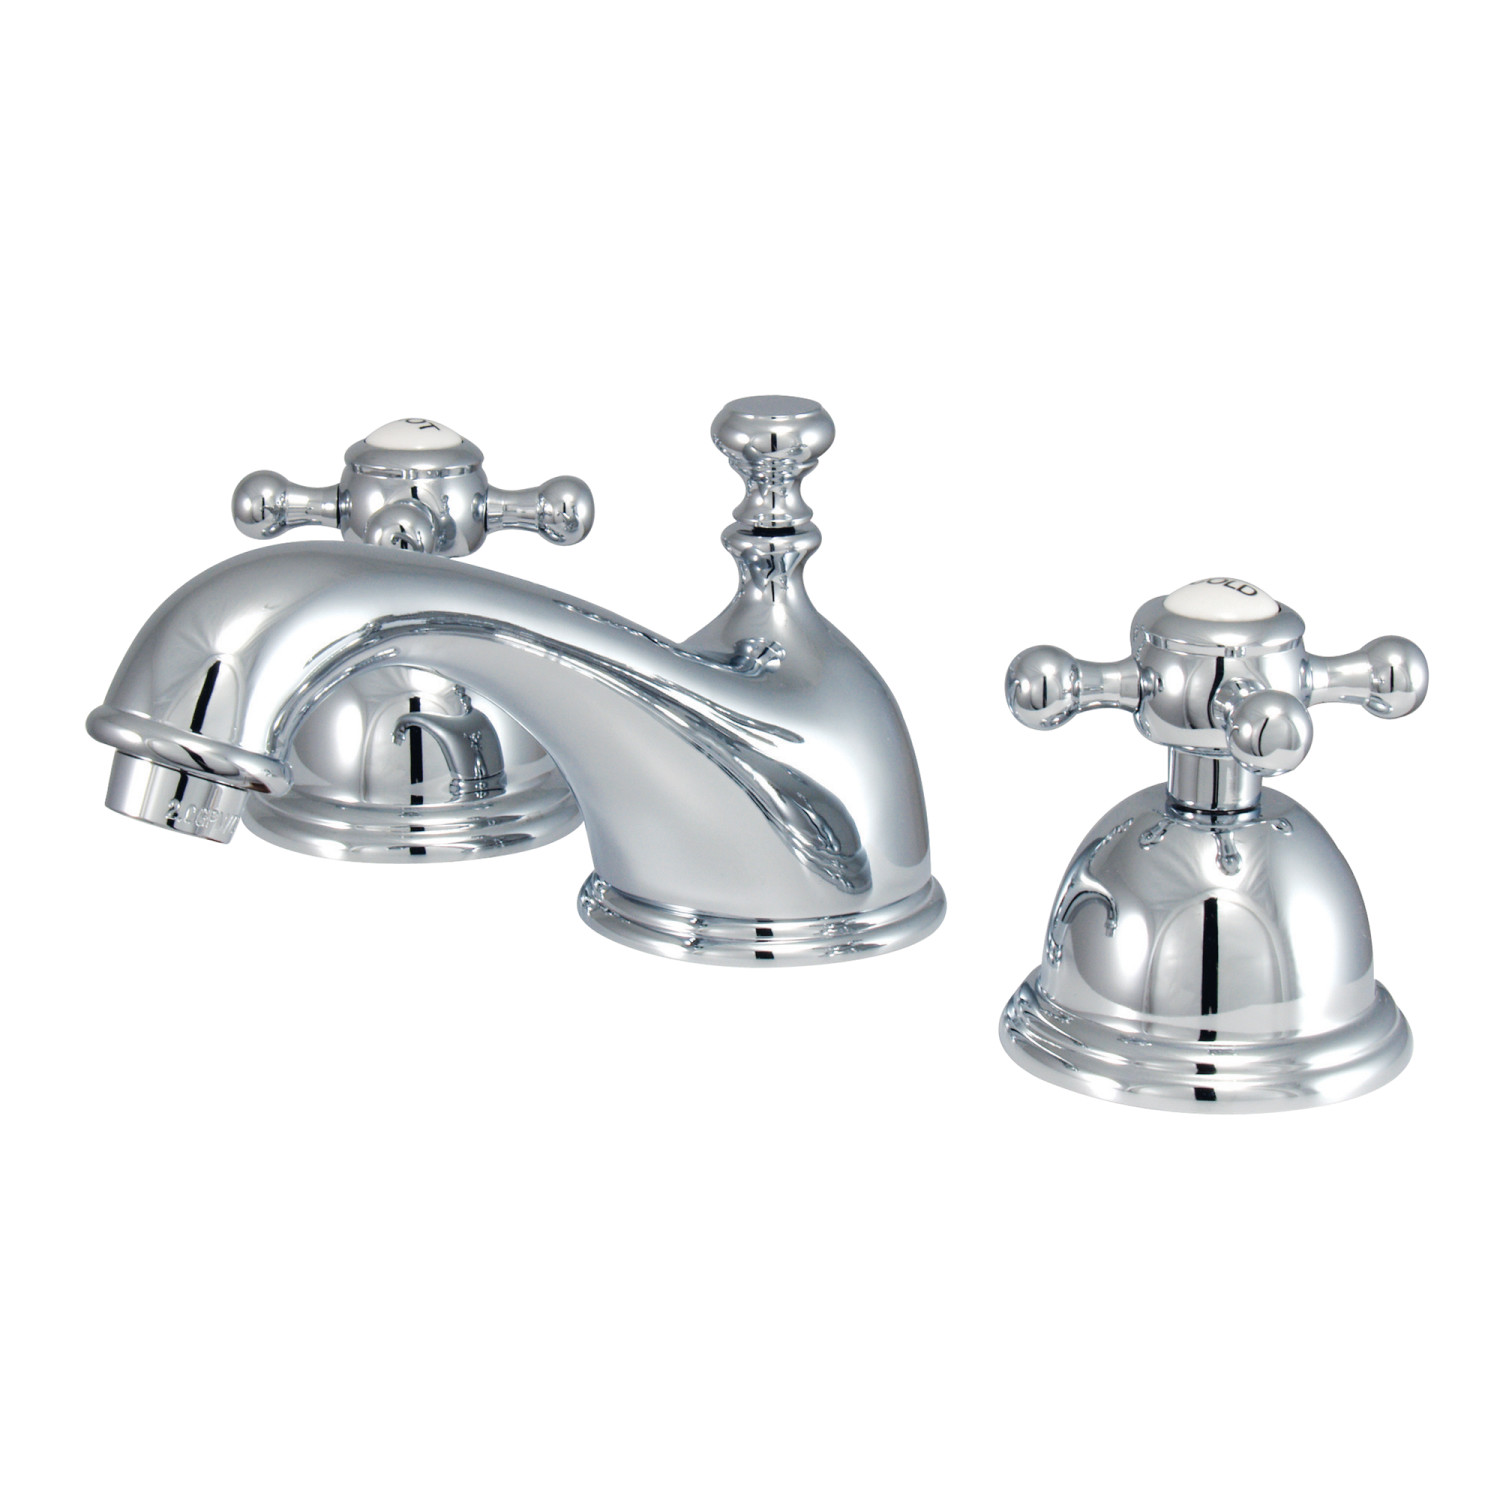 Traditional Two-Handle 3-Hole Deck Mounted Widespread Bathroom Faucet Brass Pop-Up Polished Chrome